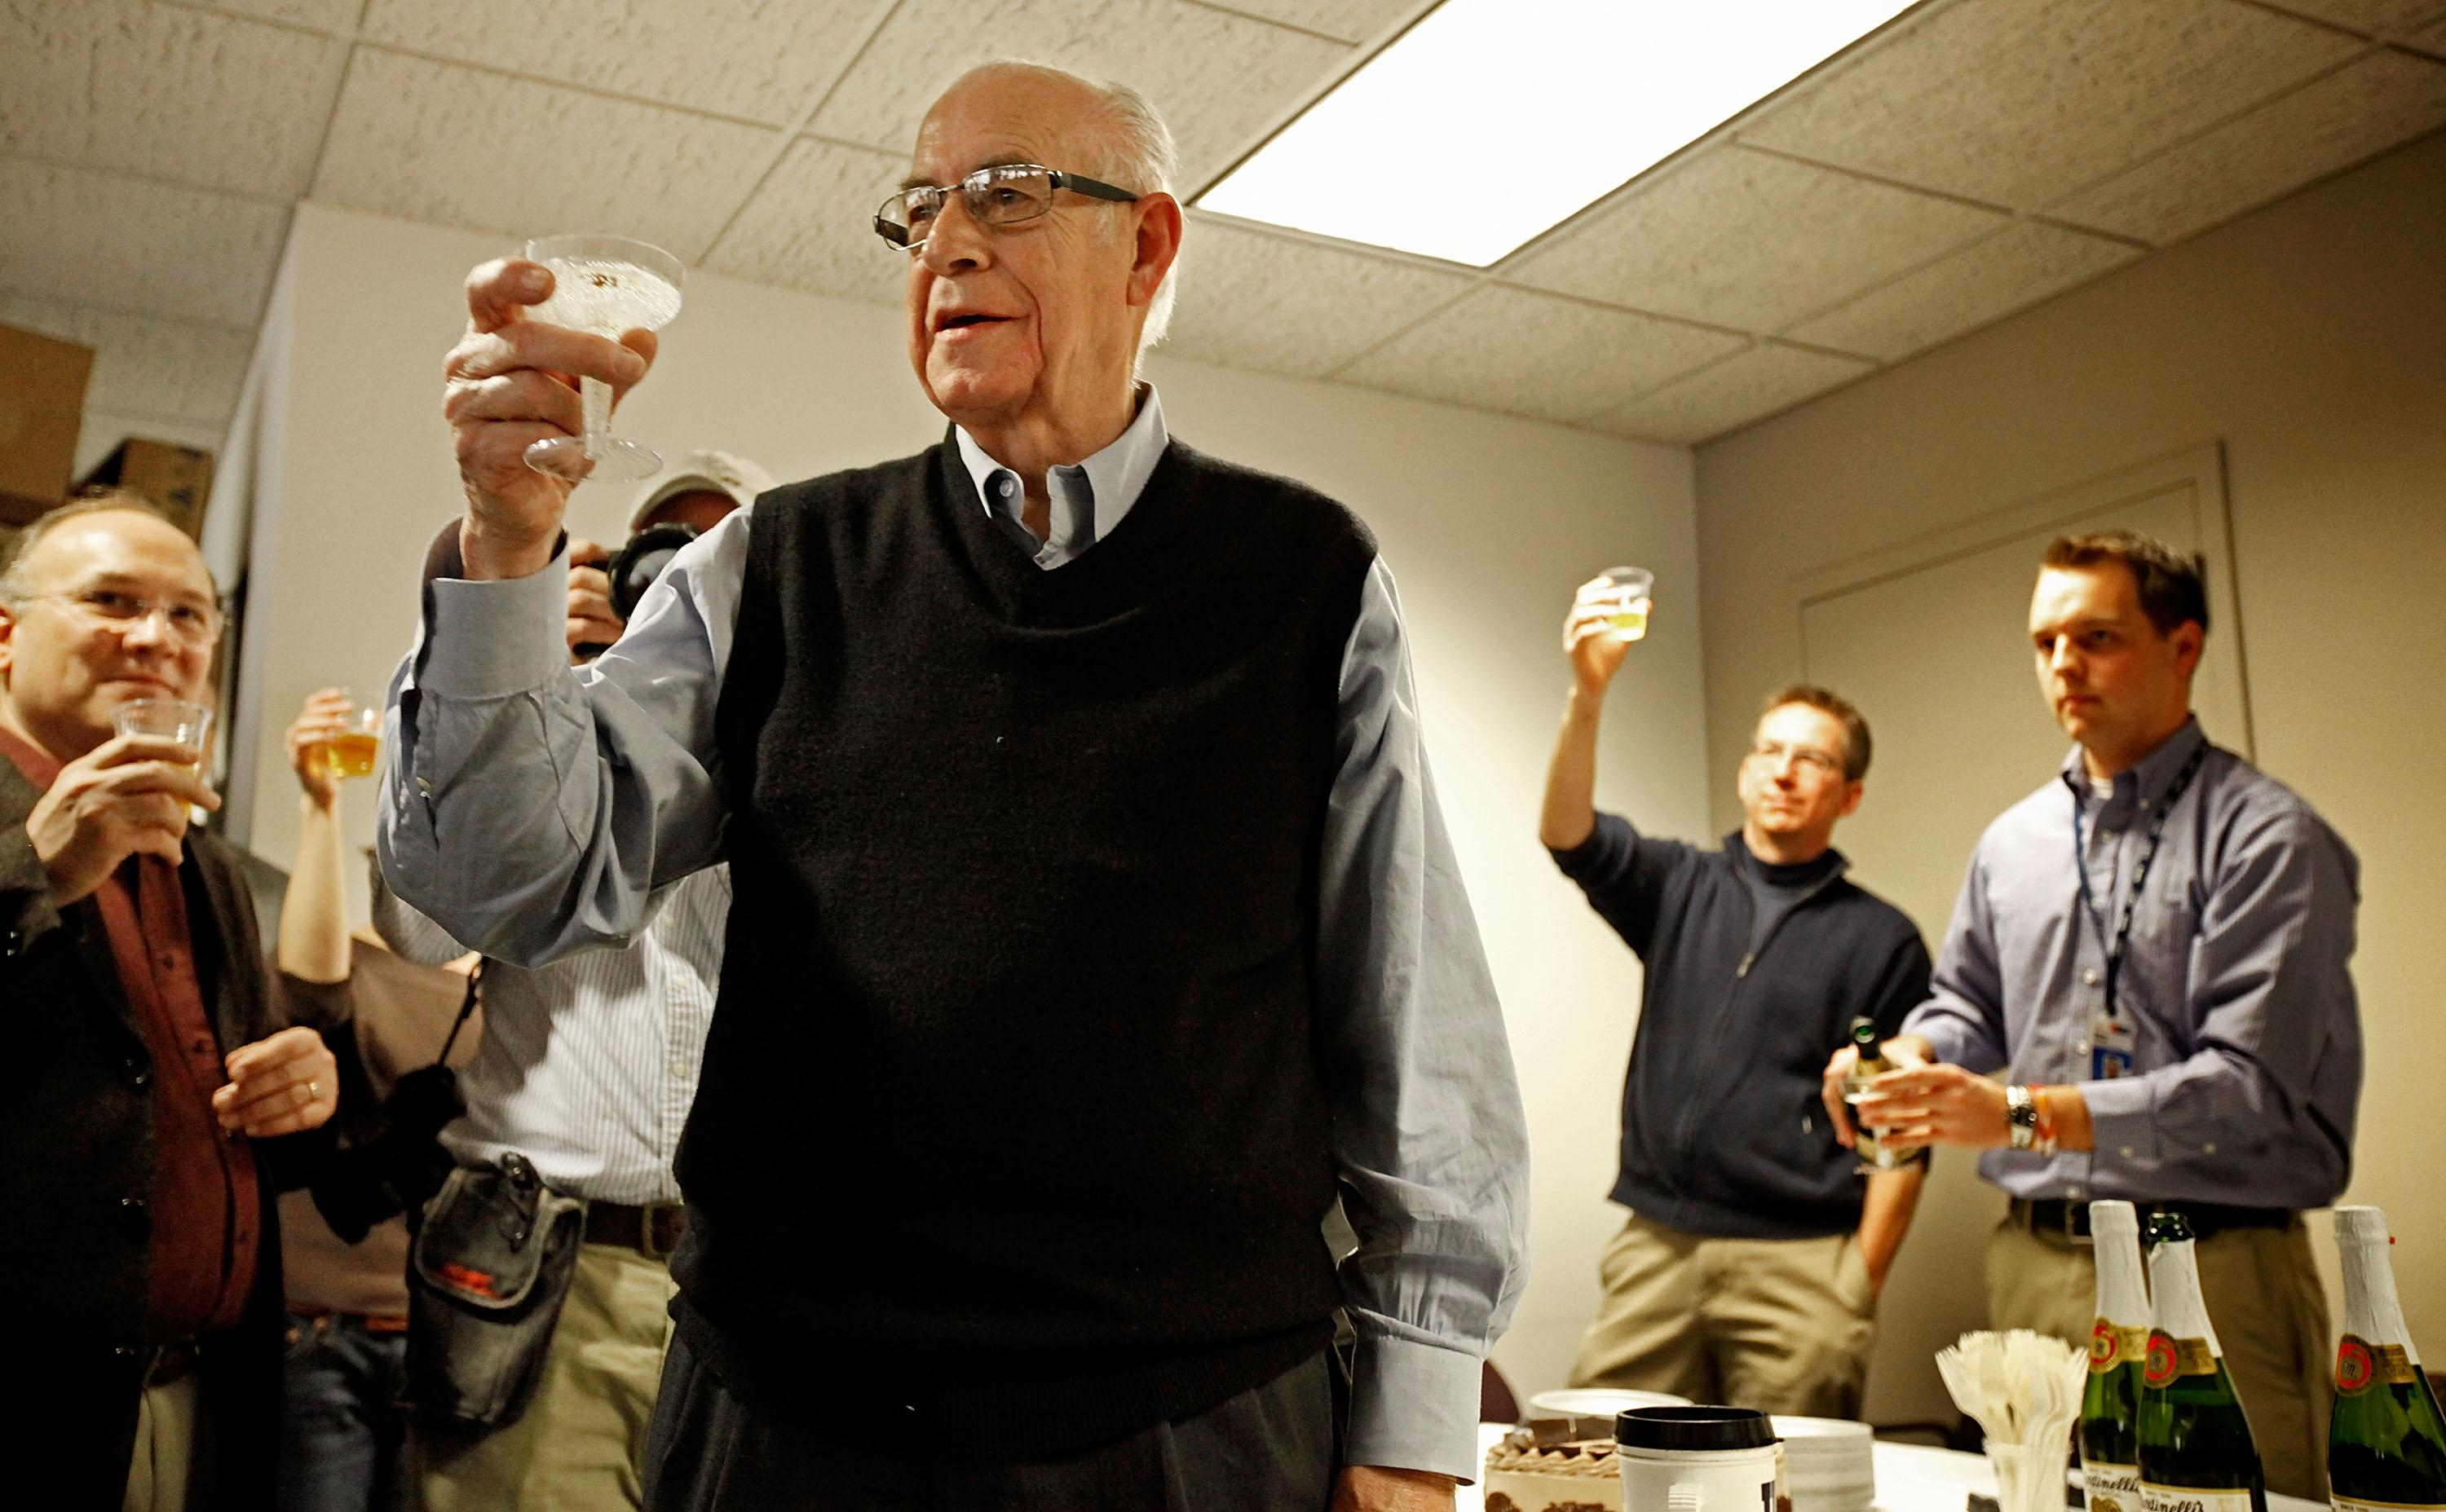 National Public Radio's Carl Kasell lifts a glass to toast his co-workers after delivering his last newscast at NPR December 30, 2009 in Washington, DC. A newscaster with NPR for 30 years, Kasell will take up the duty of roving ambassador for the network and continue his work on the game show Wait, Wait... Don't Tell Me!